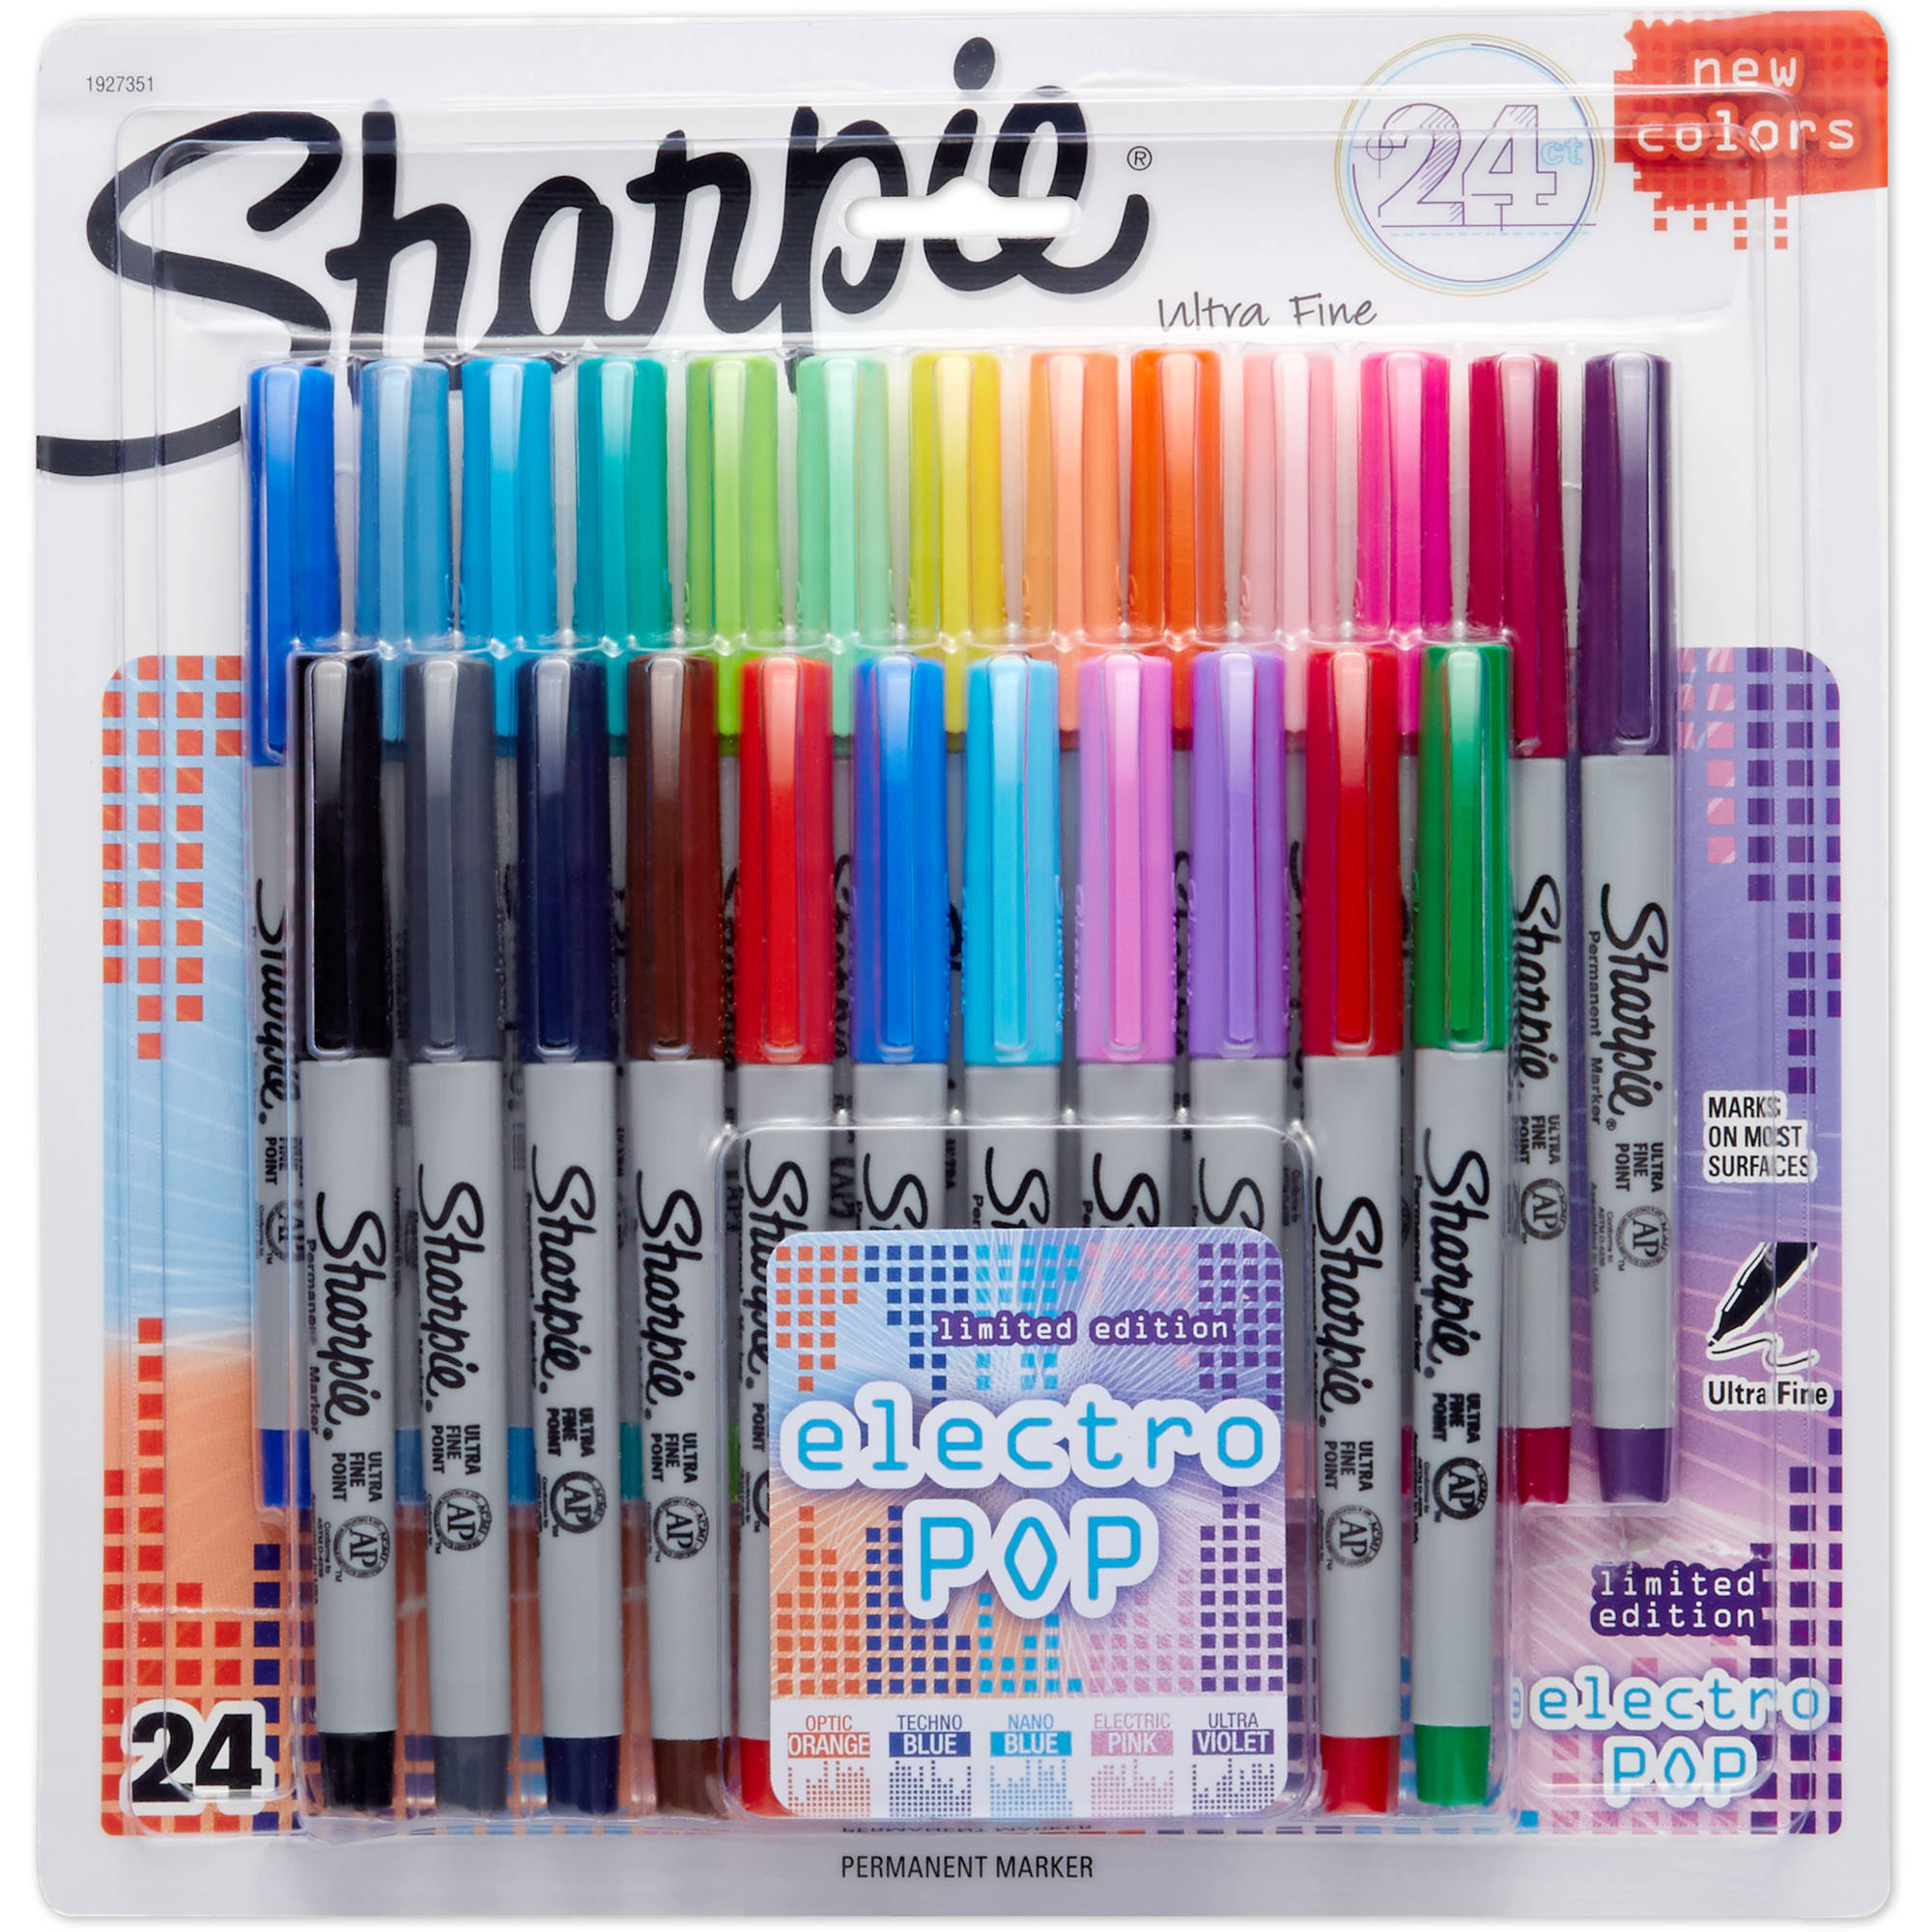 Sharpie Permanent Markers, Ultra-Fine Point, 80s Glam Colors, 24 Pack